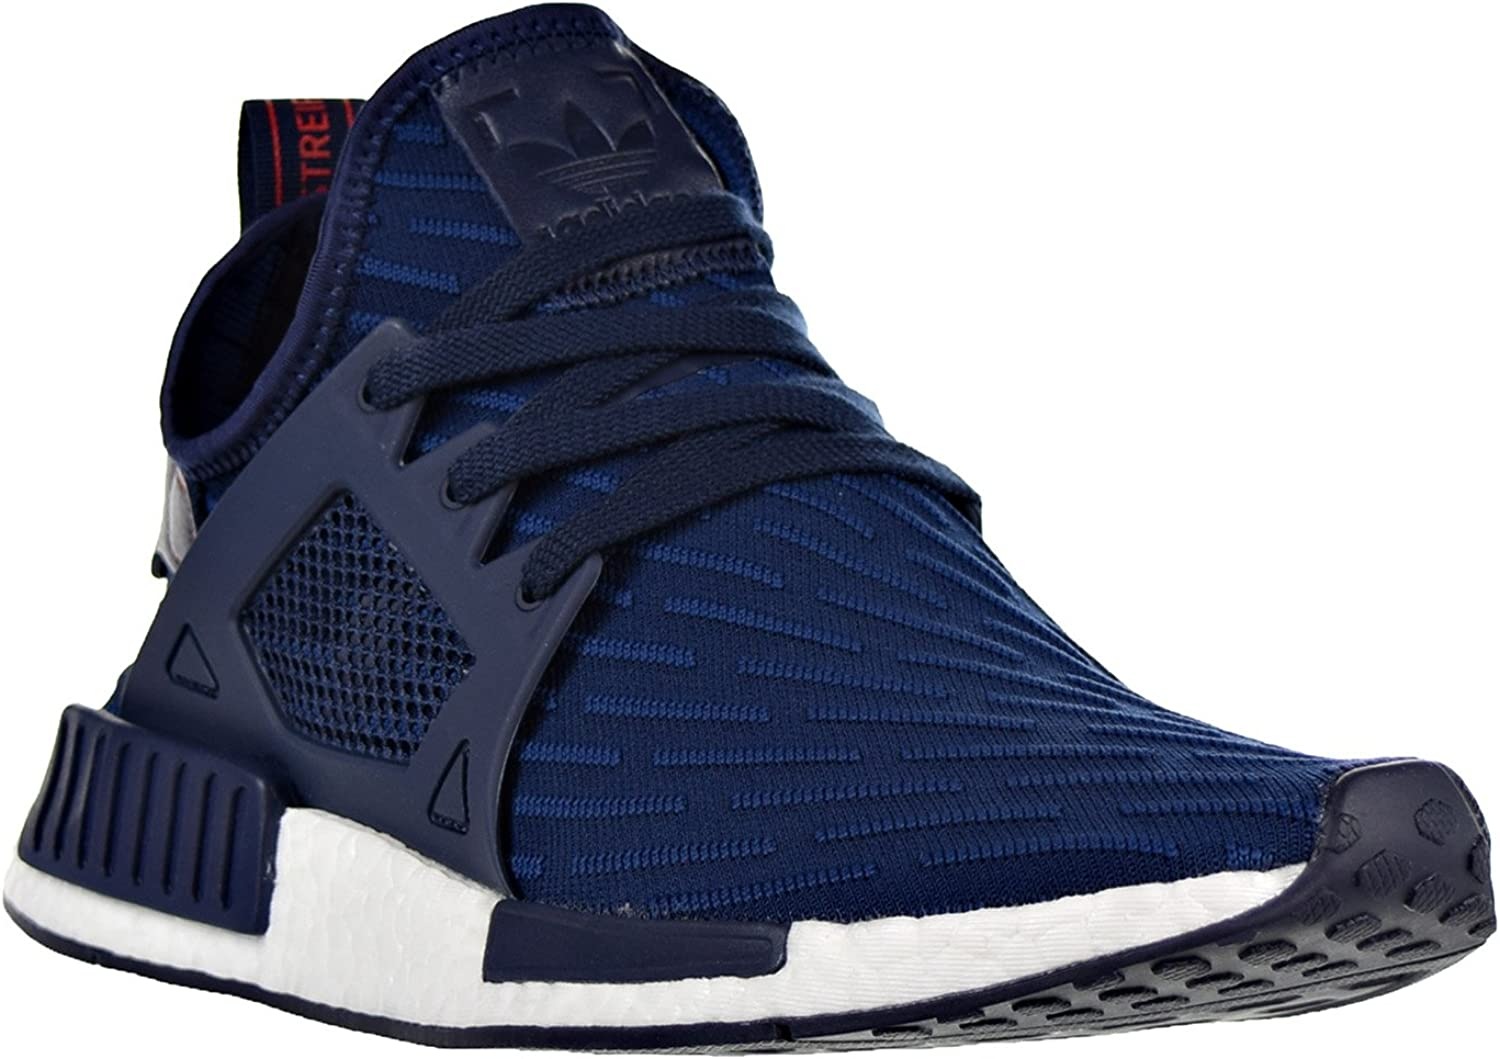 adidas NMD_XR1 PK Men's Shoes